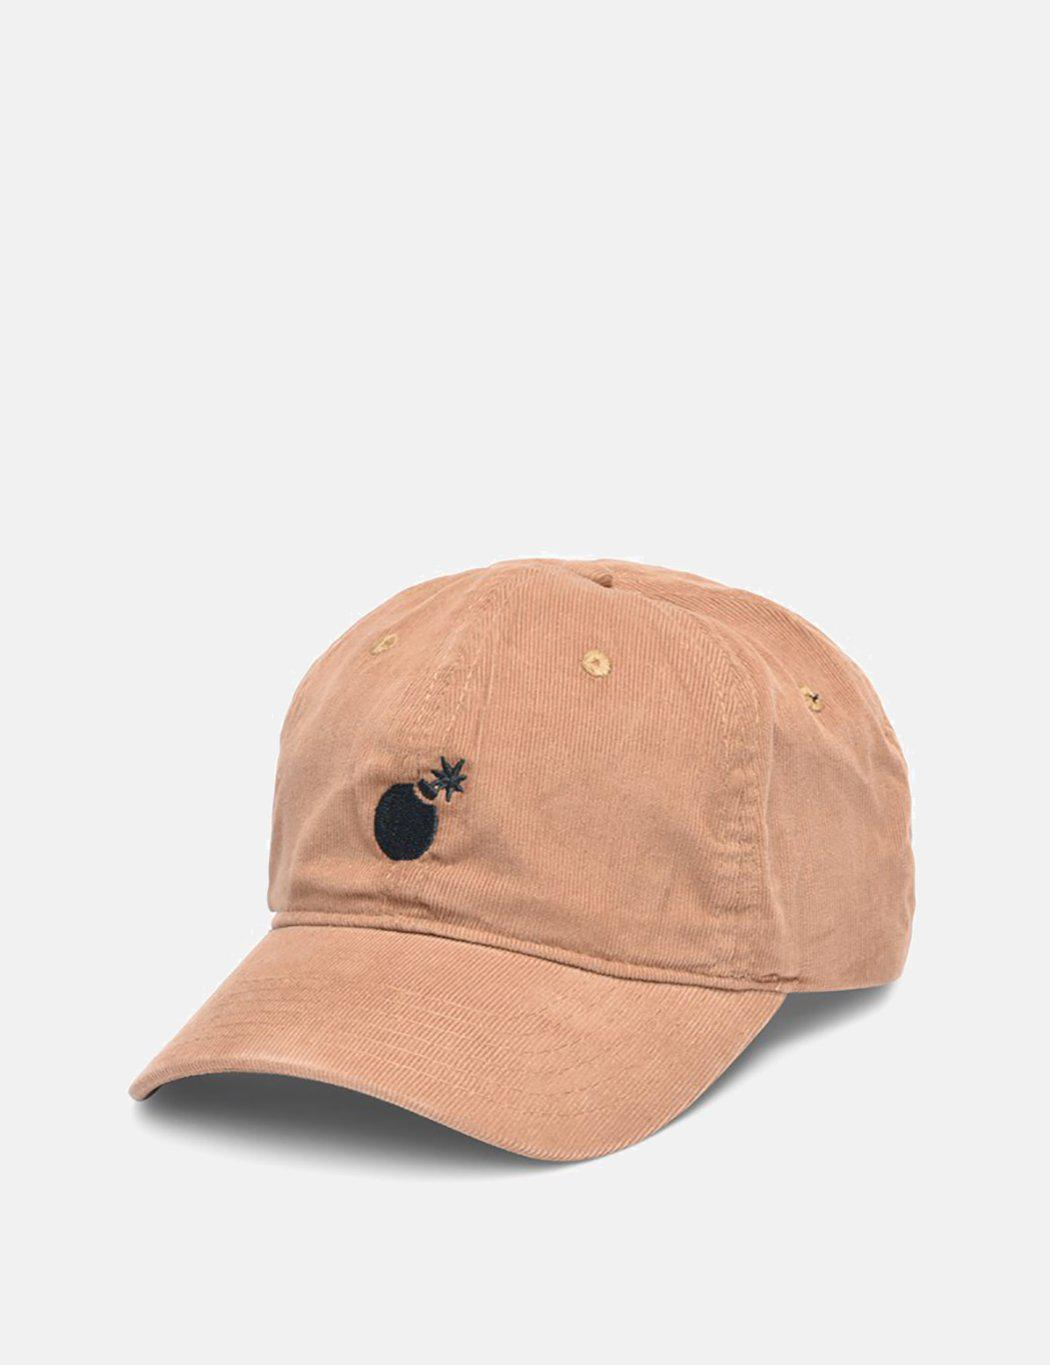 The Hundreds Solid Bomb Dad Cap in Natural for Men - Lyst b799ea62951